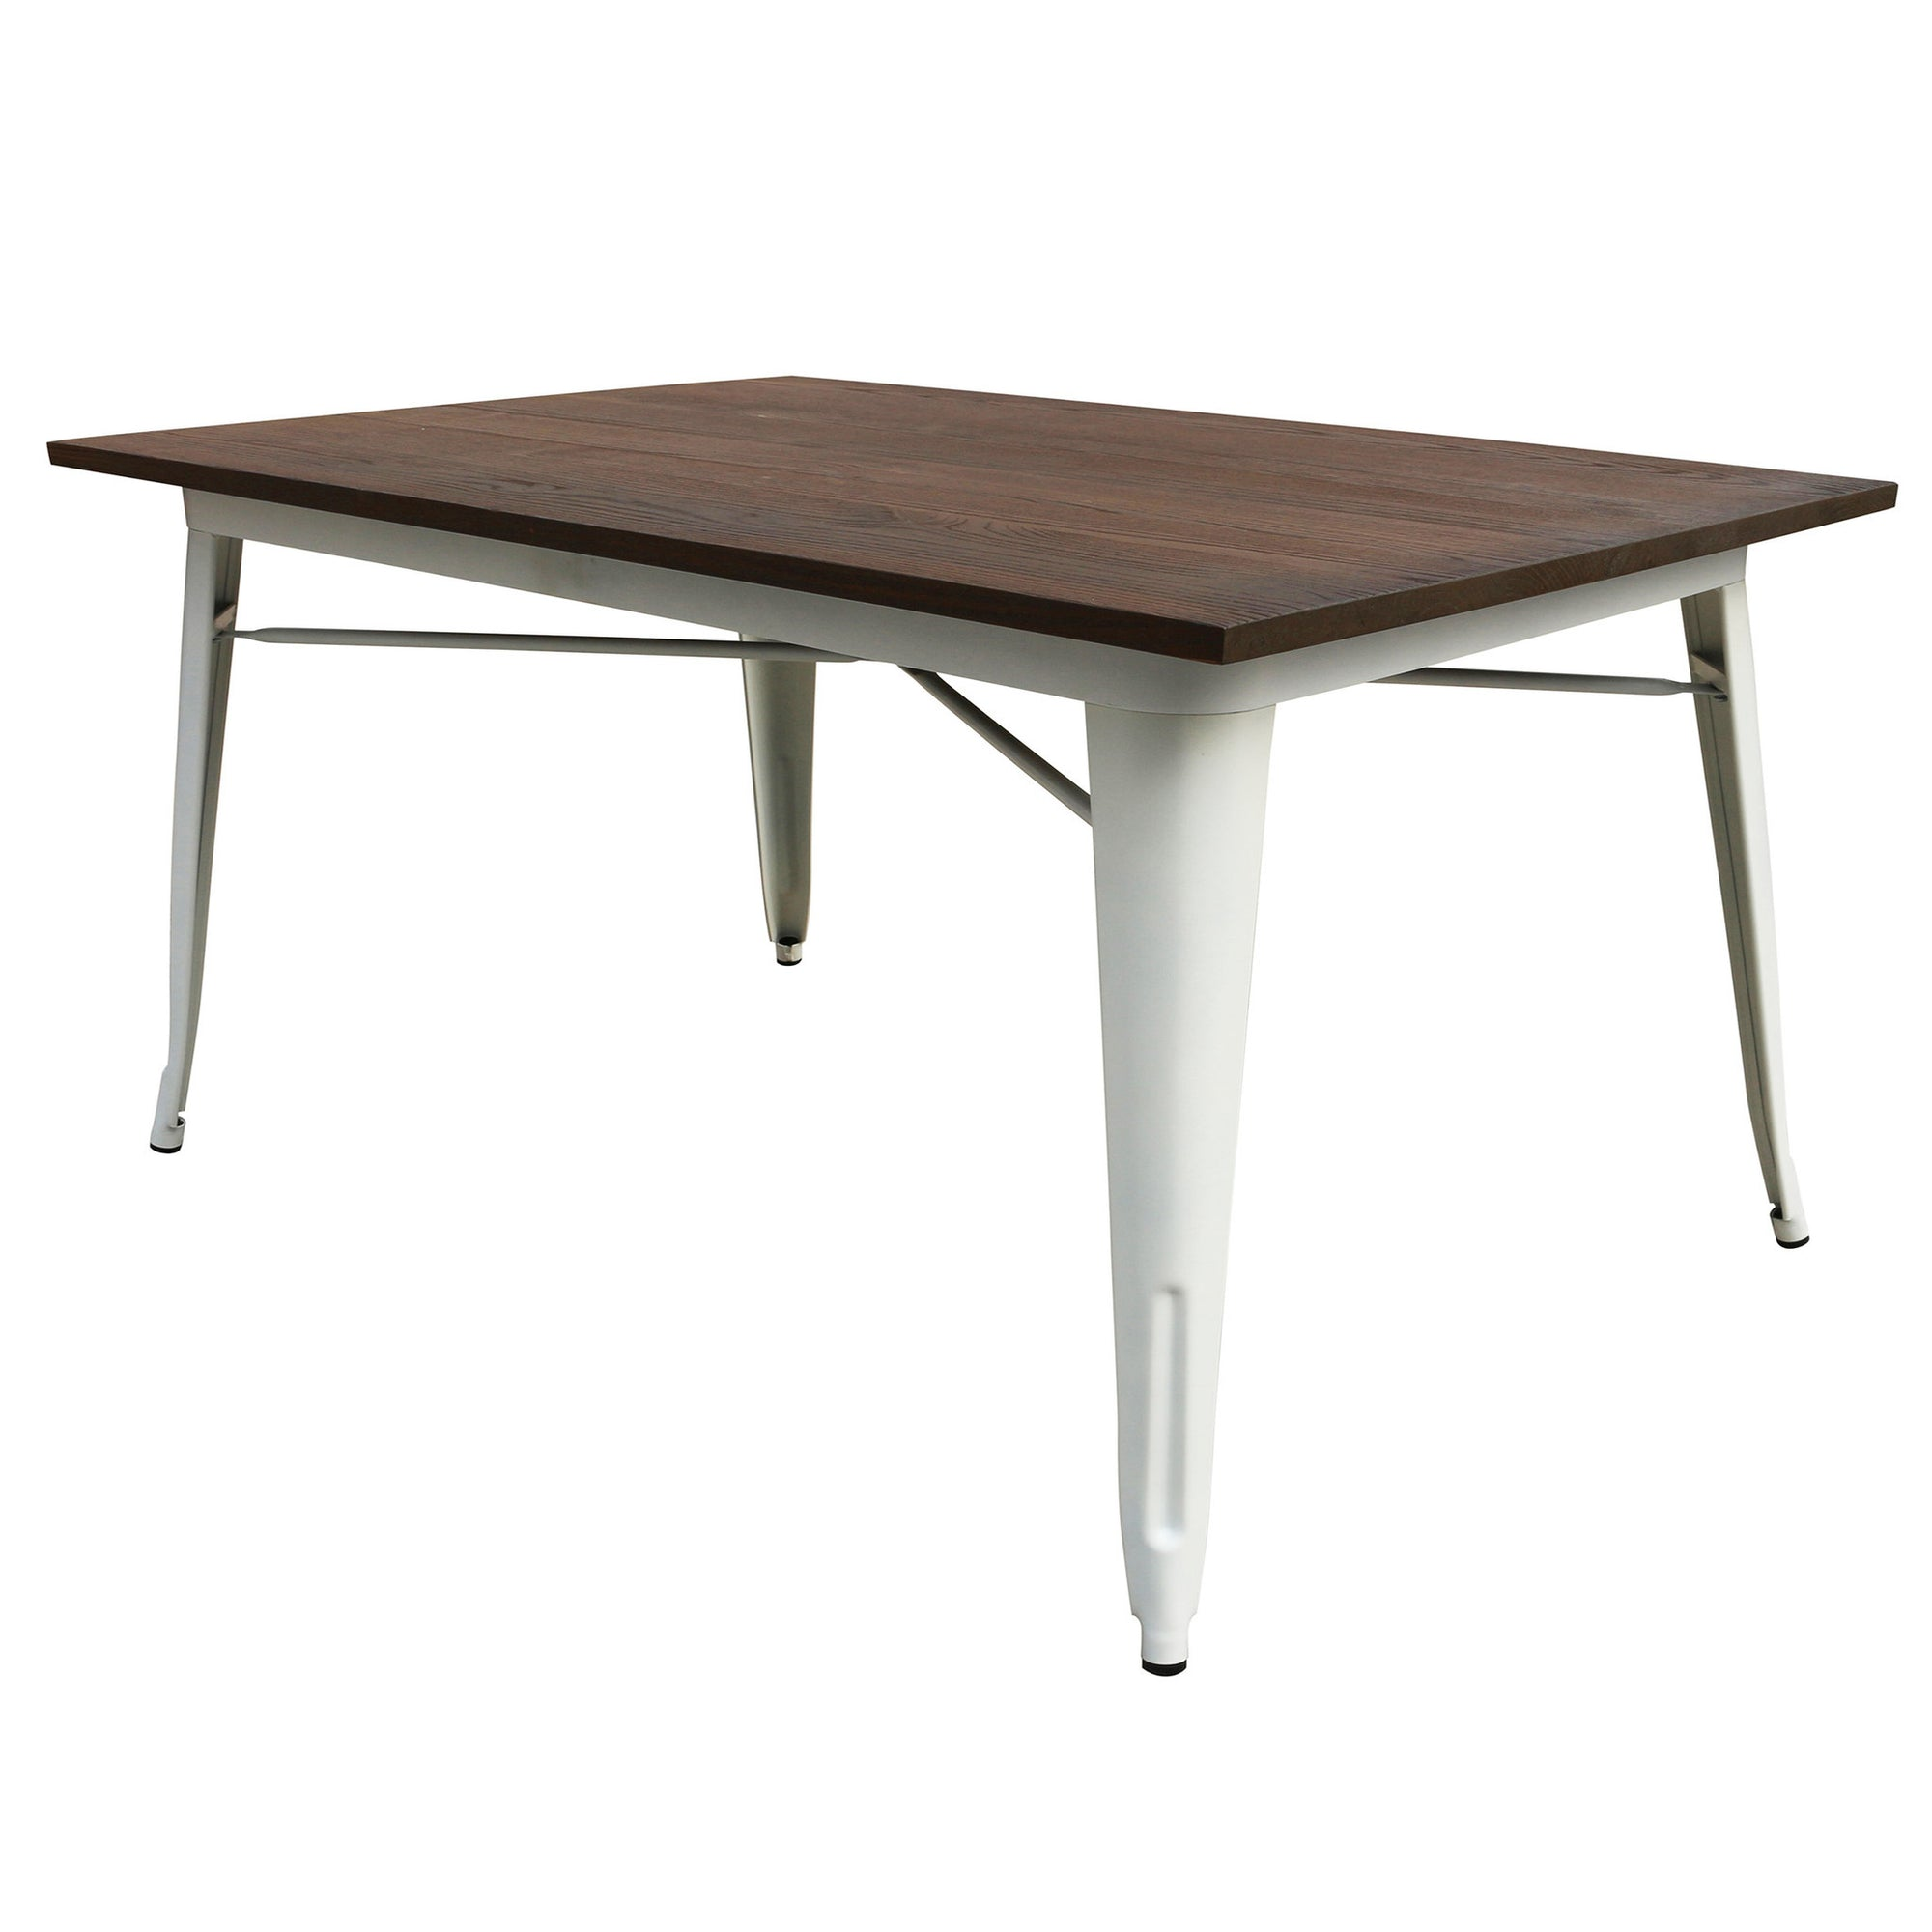 Dinning Table - Industrial Table With Solid Wood Top 120 Cm BPTT02W+W